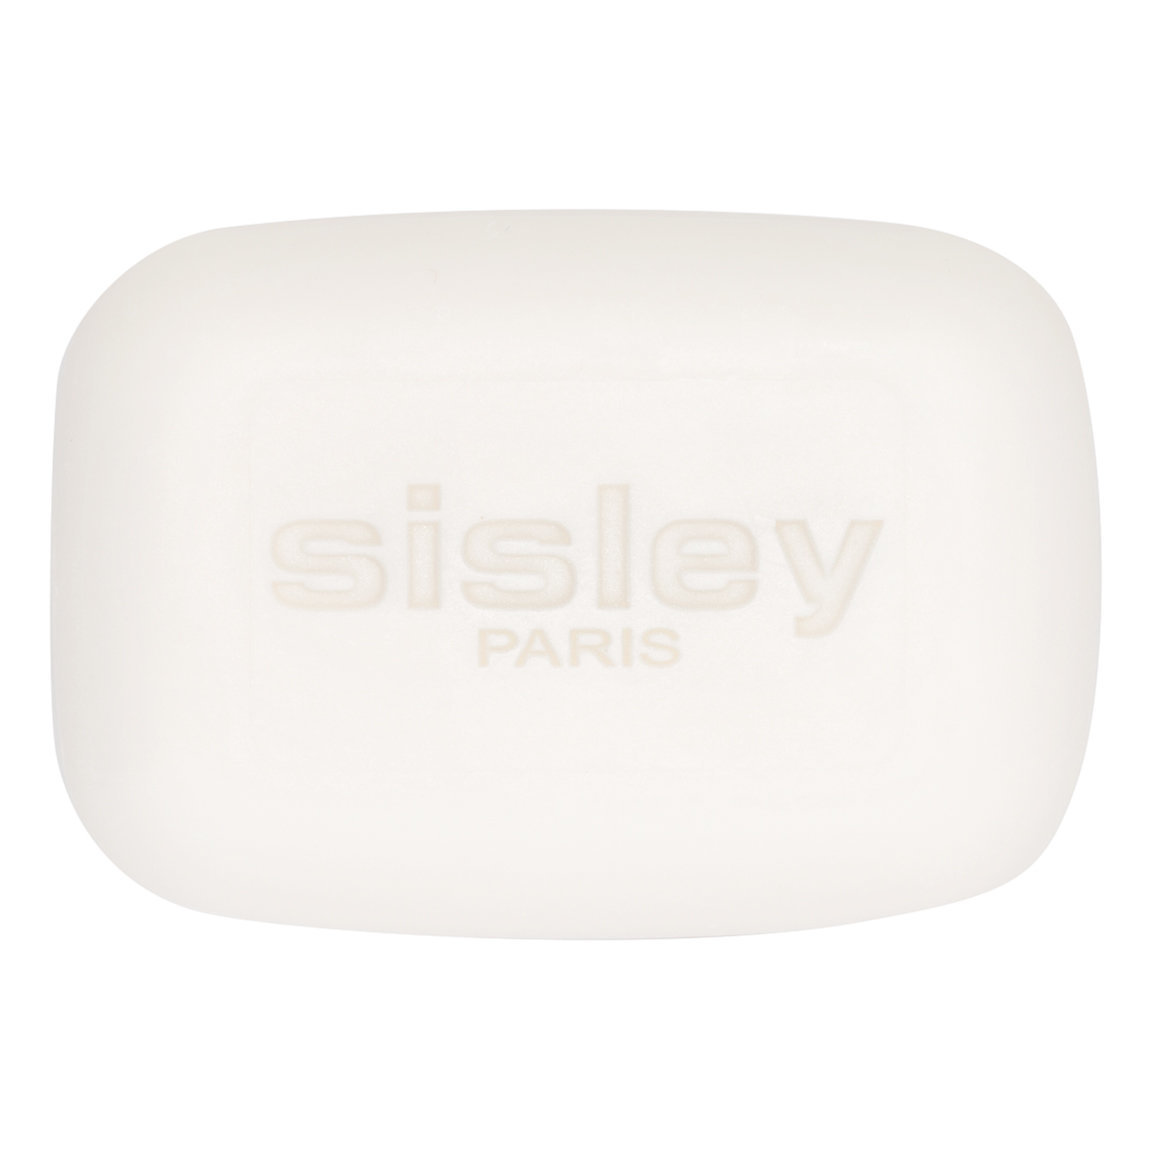 Sisley-Paris Soapless Facial Cleansing Bar product smear.